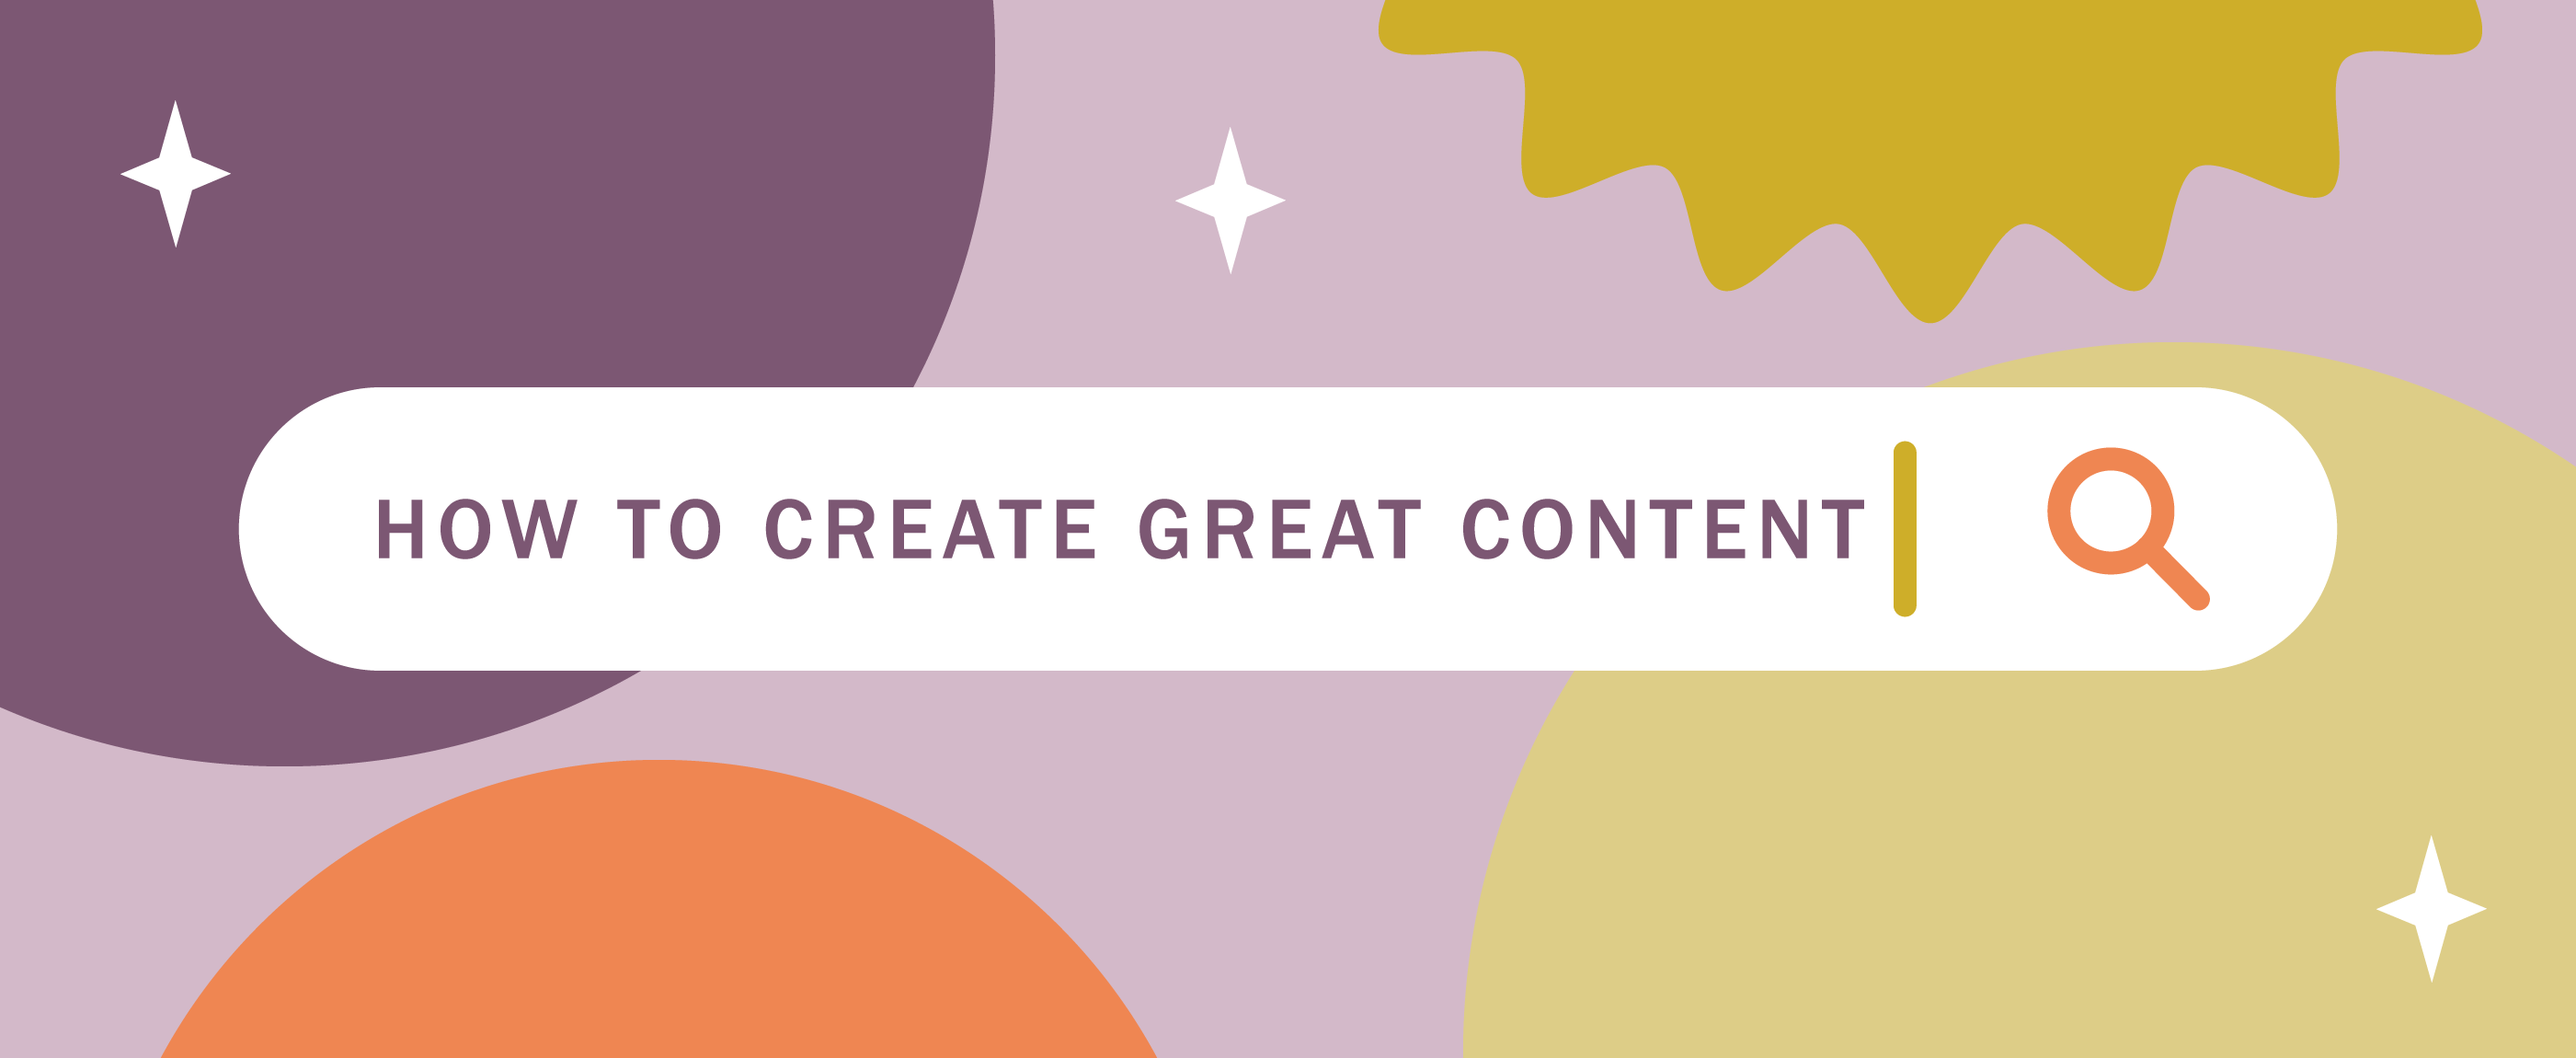 A 10 Step Guide to Creating Great Content, by darren-griffin